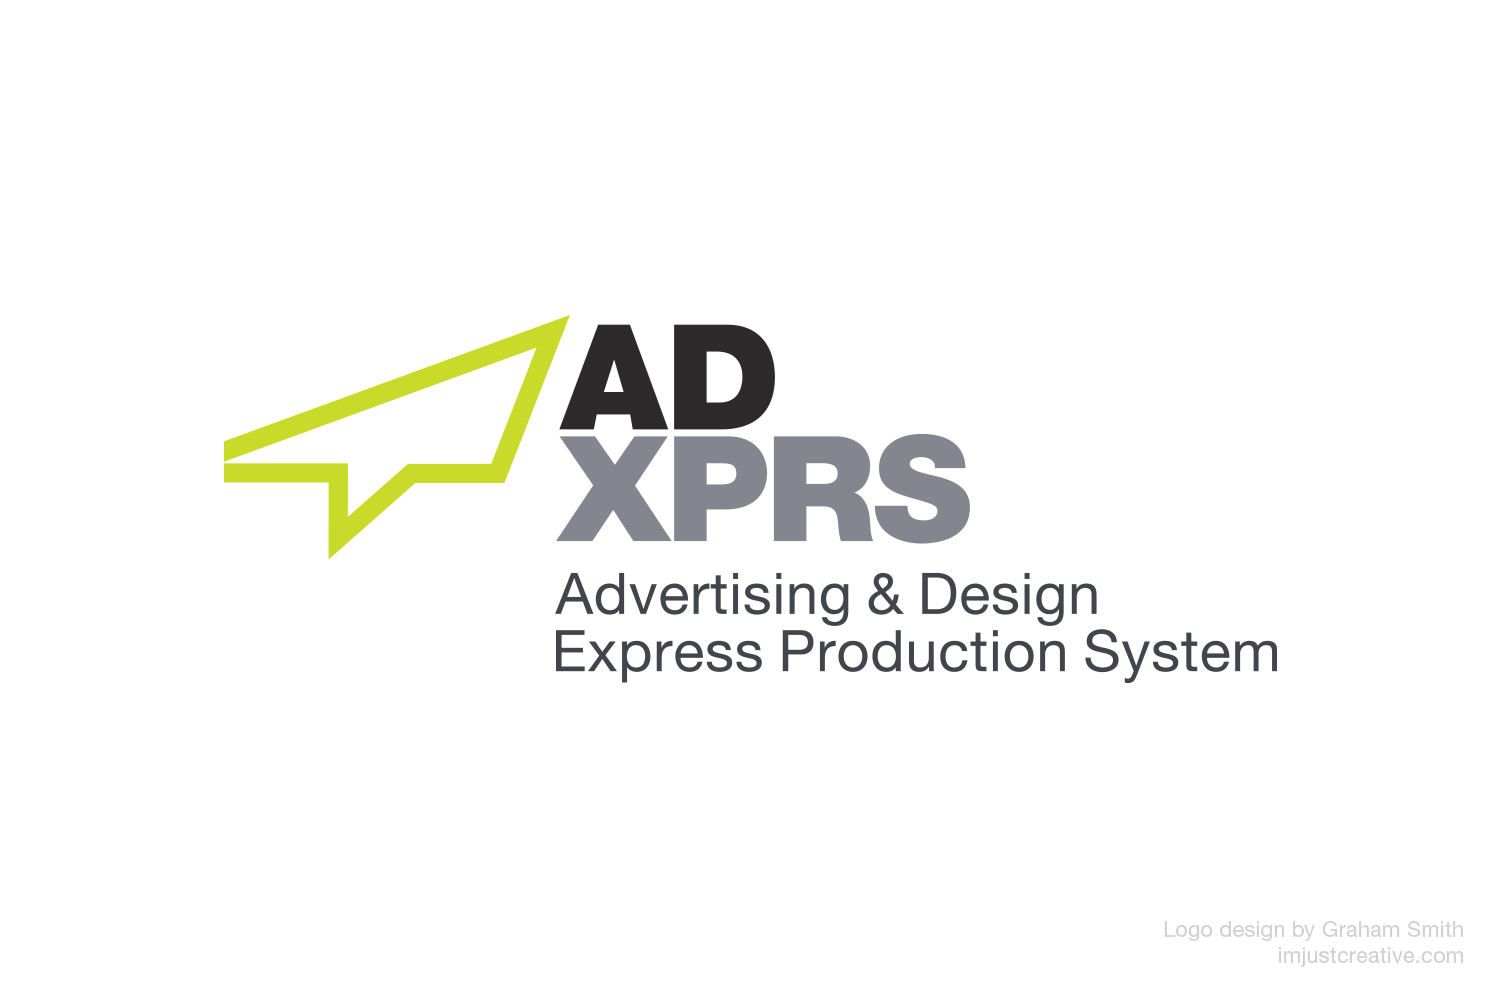 ADXPRS logo design by imjustcreative